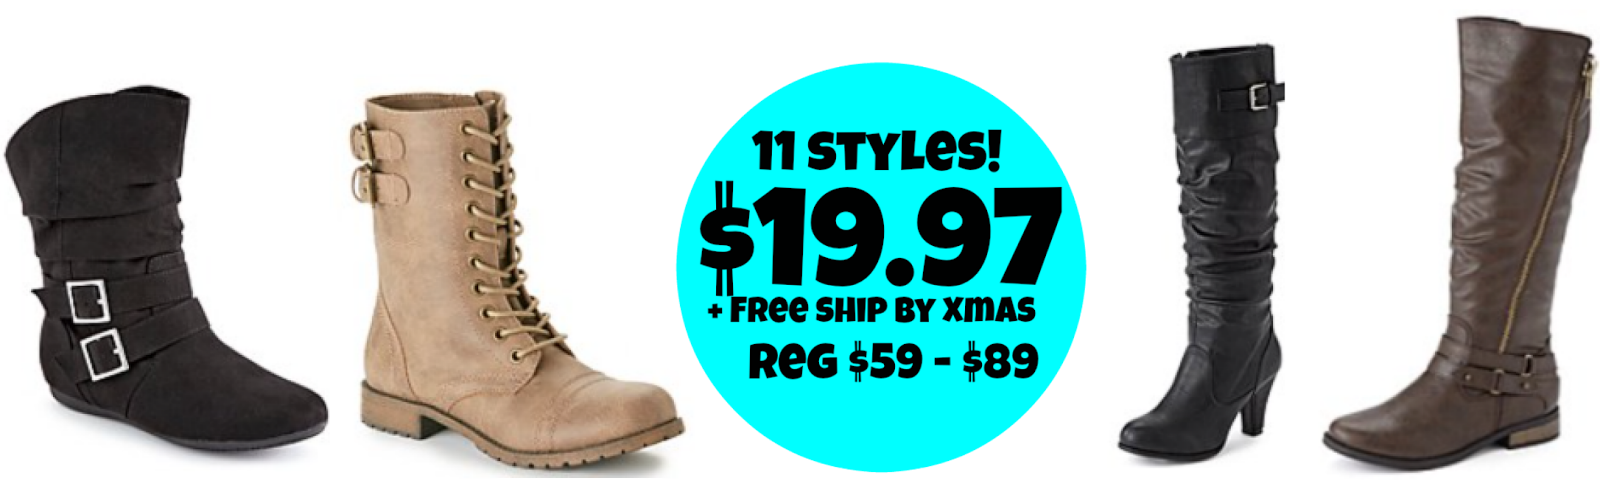 http://www.thebinderladies.com/2014/12/bon-ton-select-rampage-boots-11-styles.html#.VJNXoIfduyM